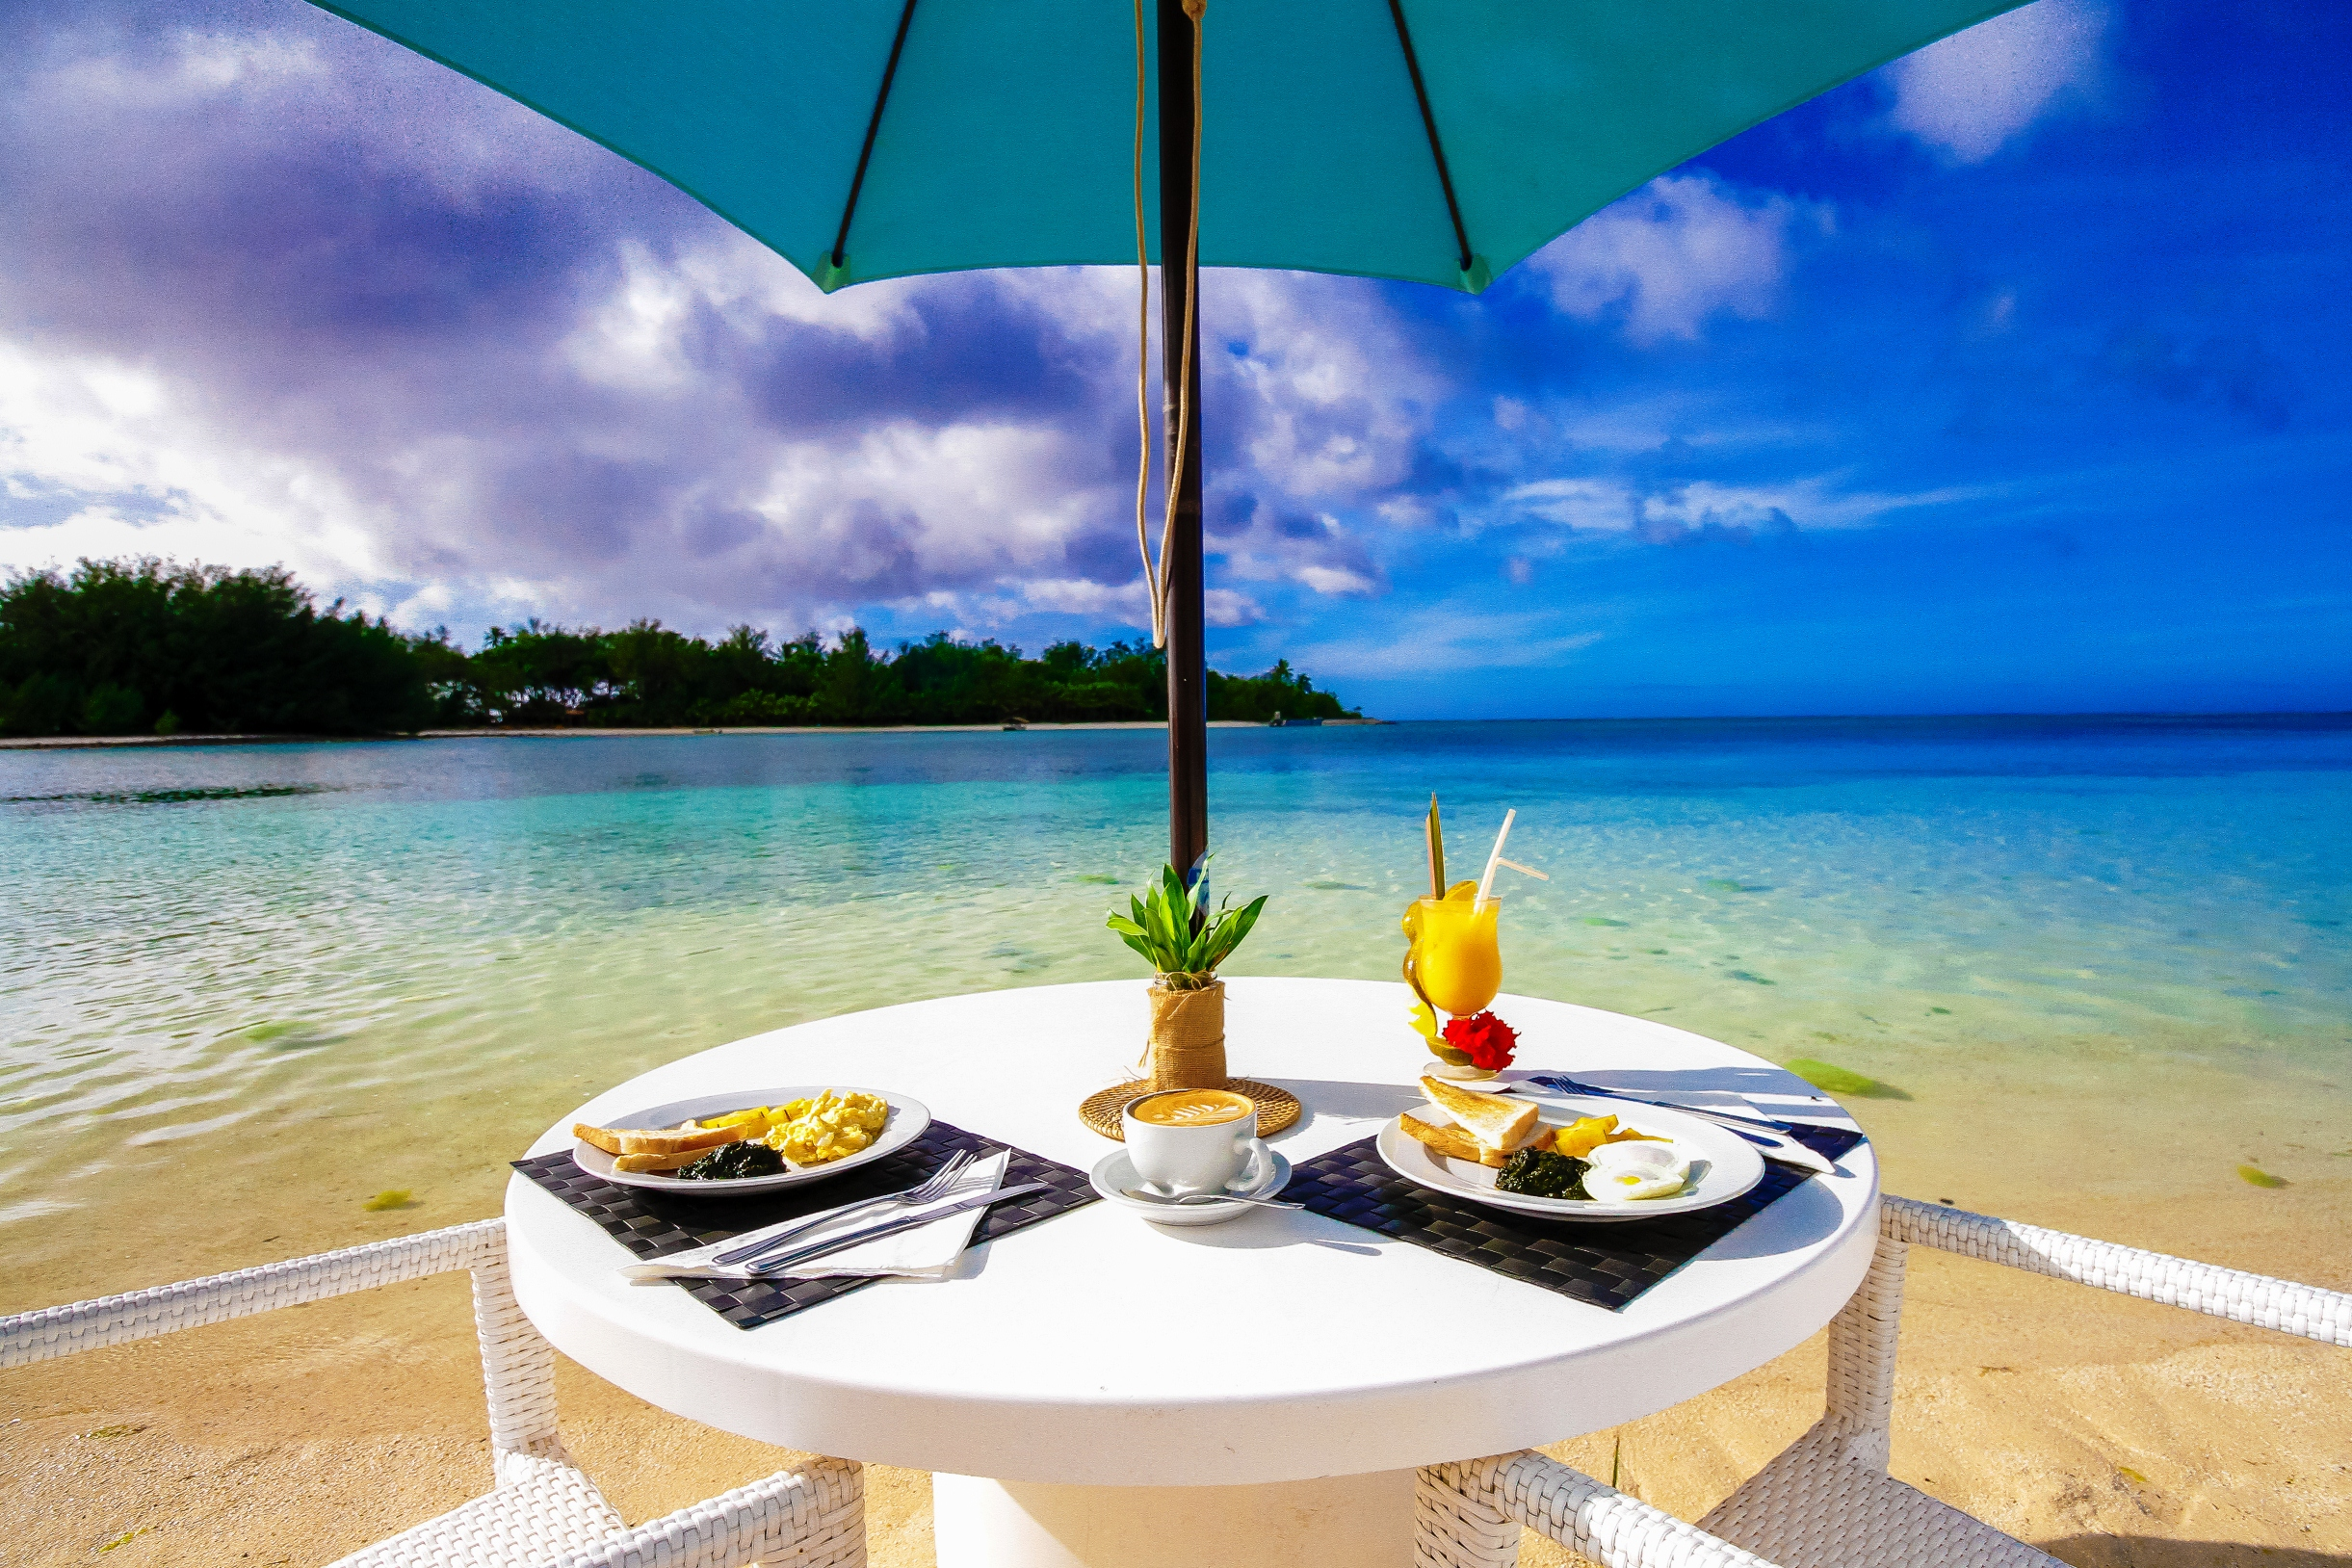 Fancy a Romantic Breakfast on the beach??